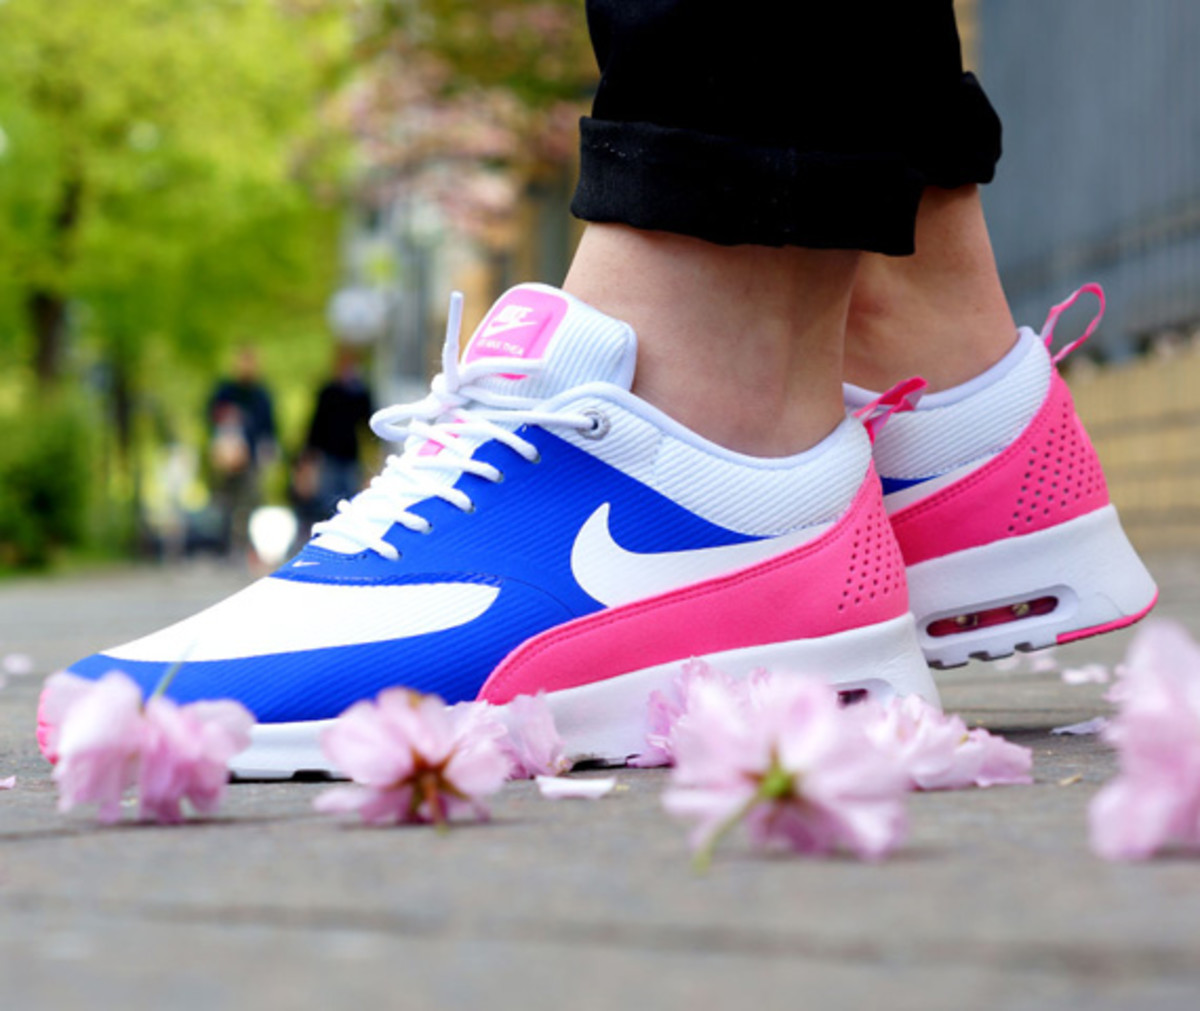 Nike WMNS Air Max Thea - Game Royal White Pink Glow Wolf